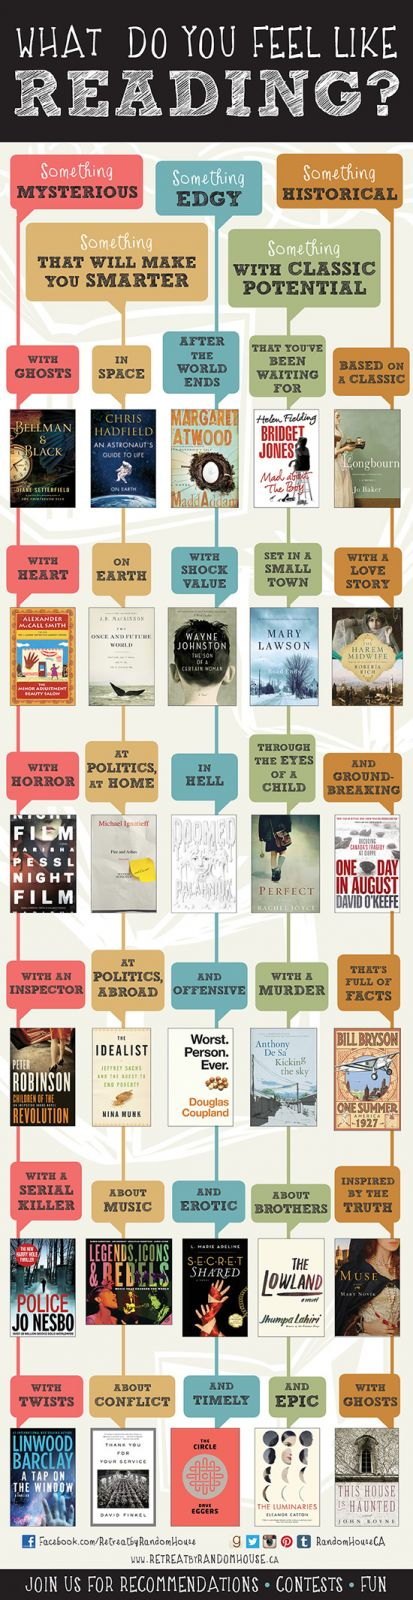 What do you feel like reading? An infographic